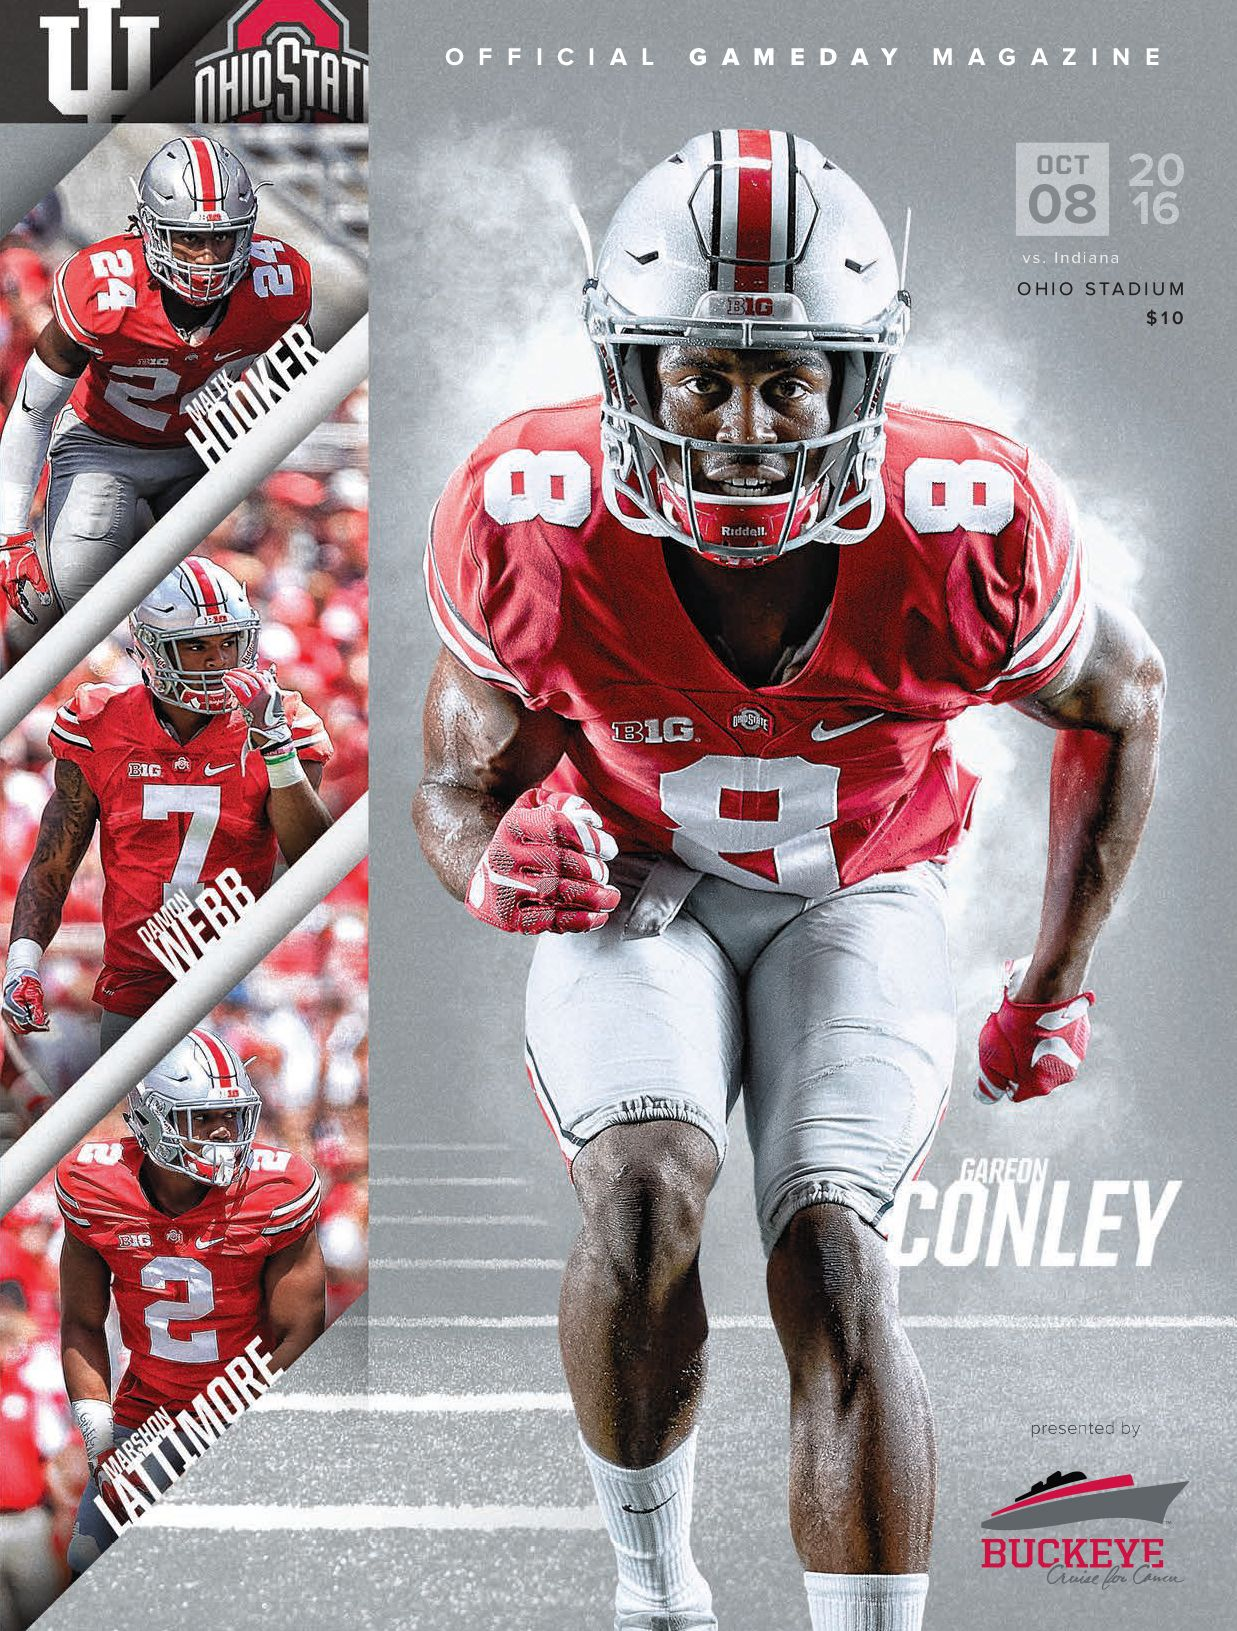 The Official Gameday Magazine Of Ohio State Buckeyes Football Vs